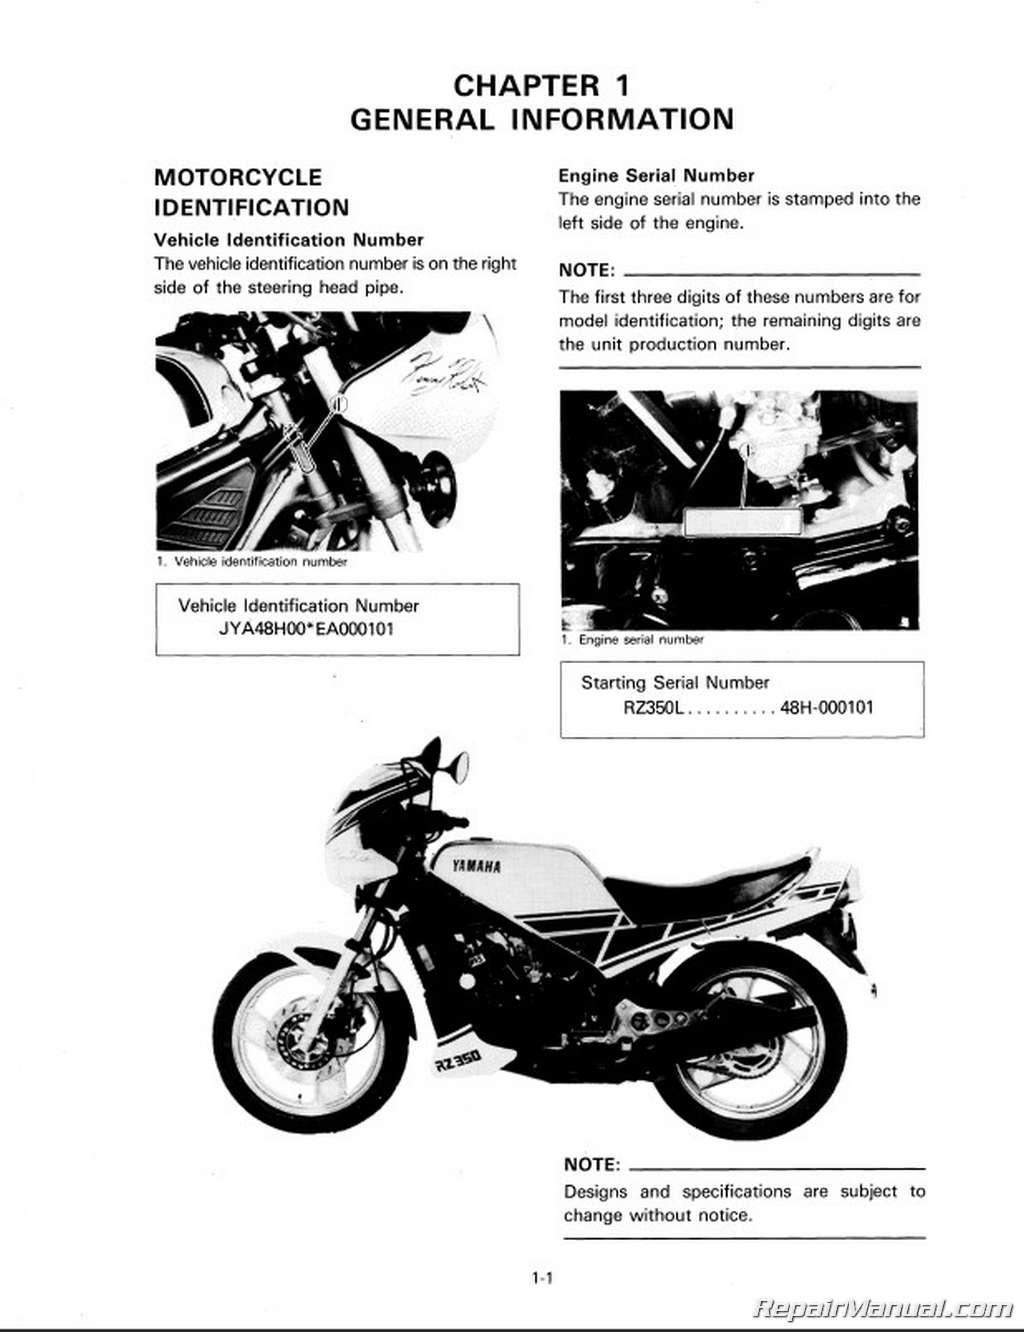 1984 - 1985 Yamaha RZ350 Two-Stroke Motorcycle Service Manual